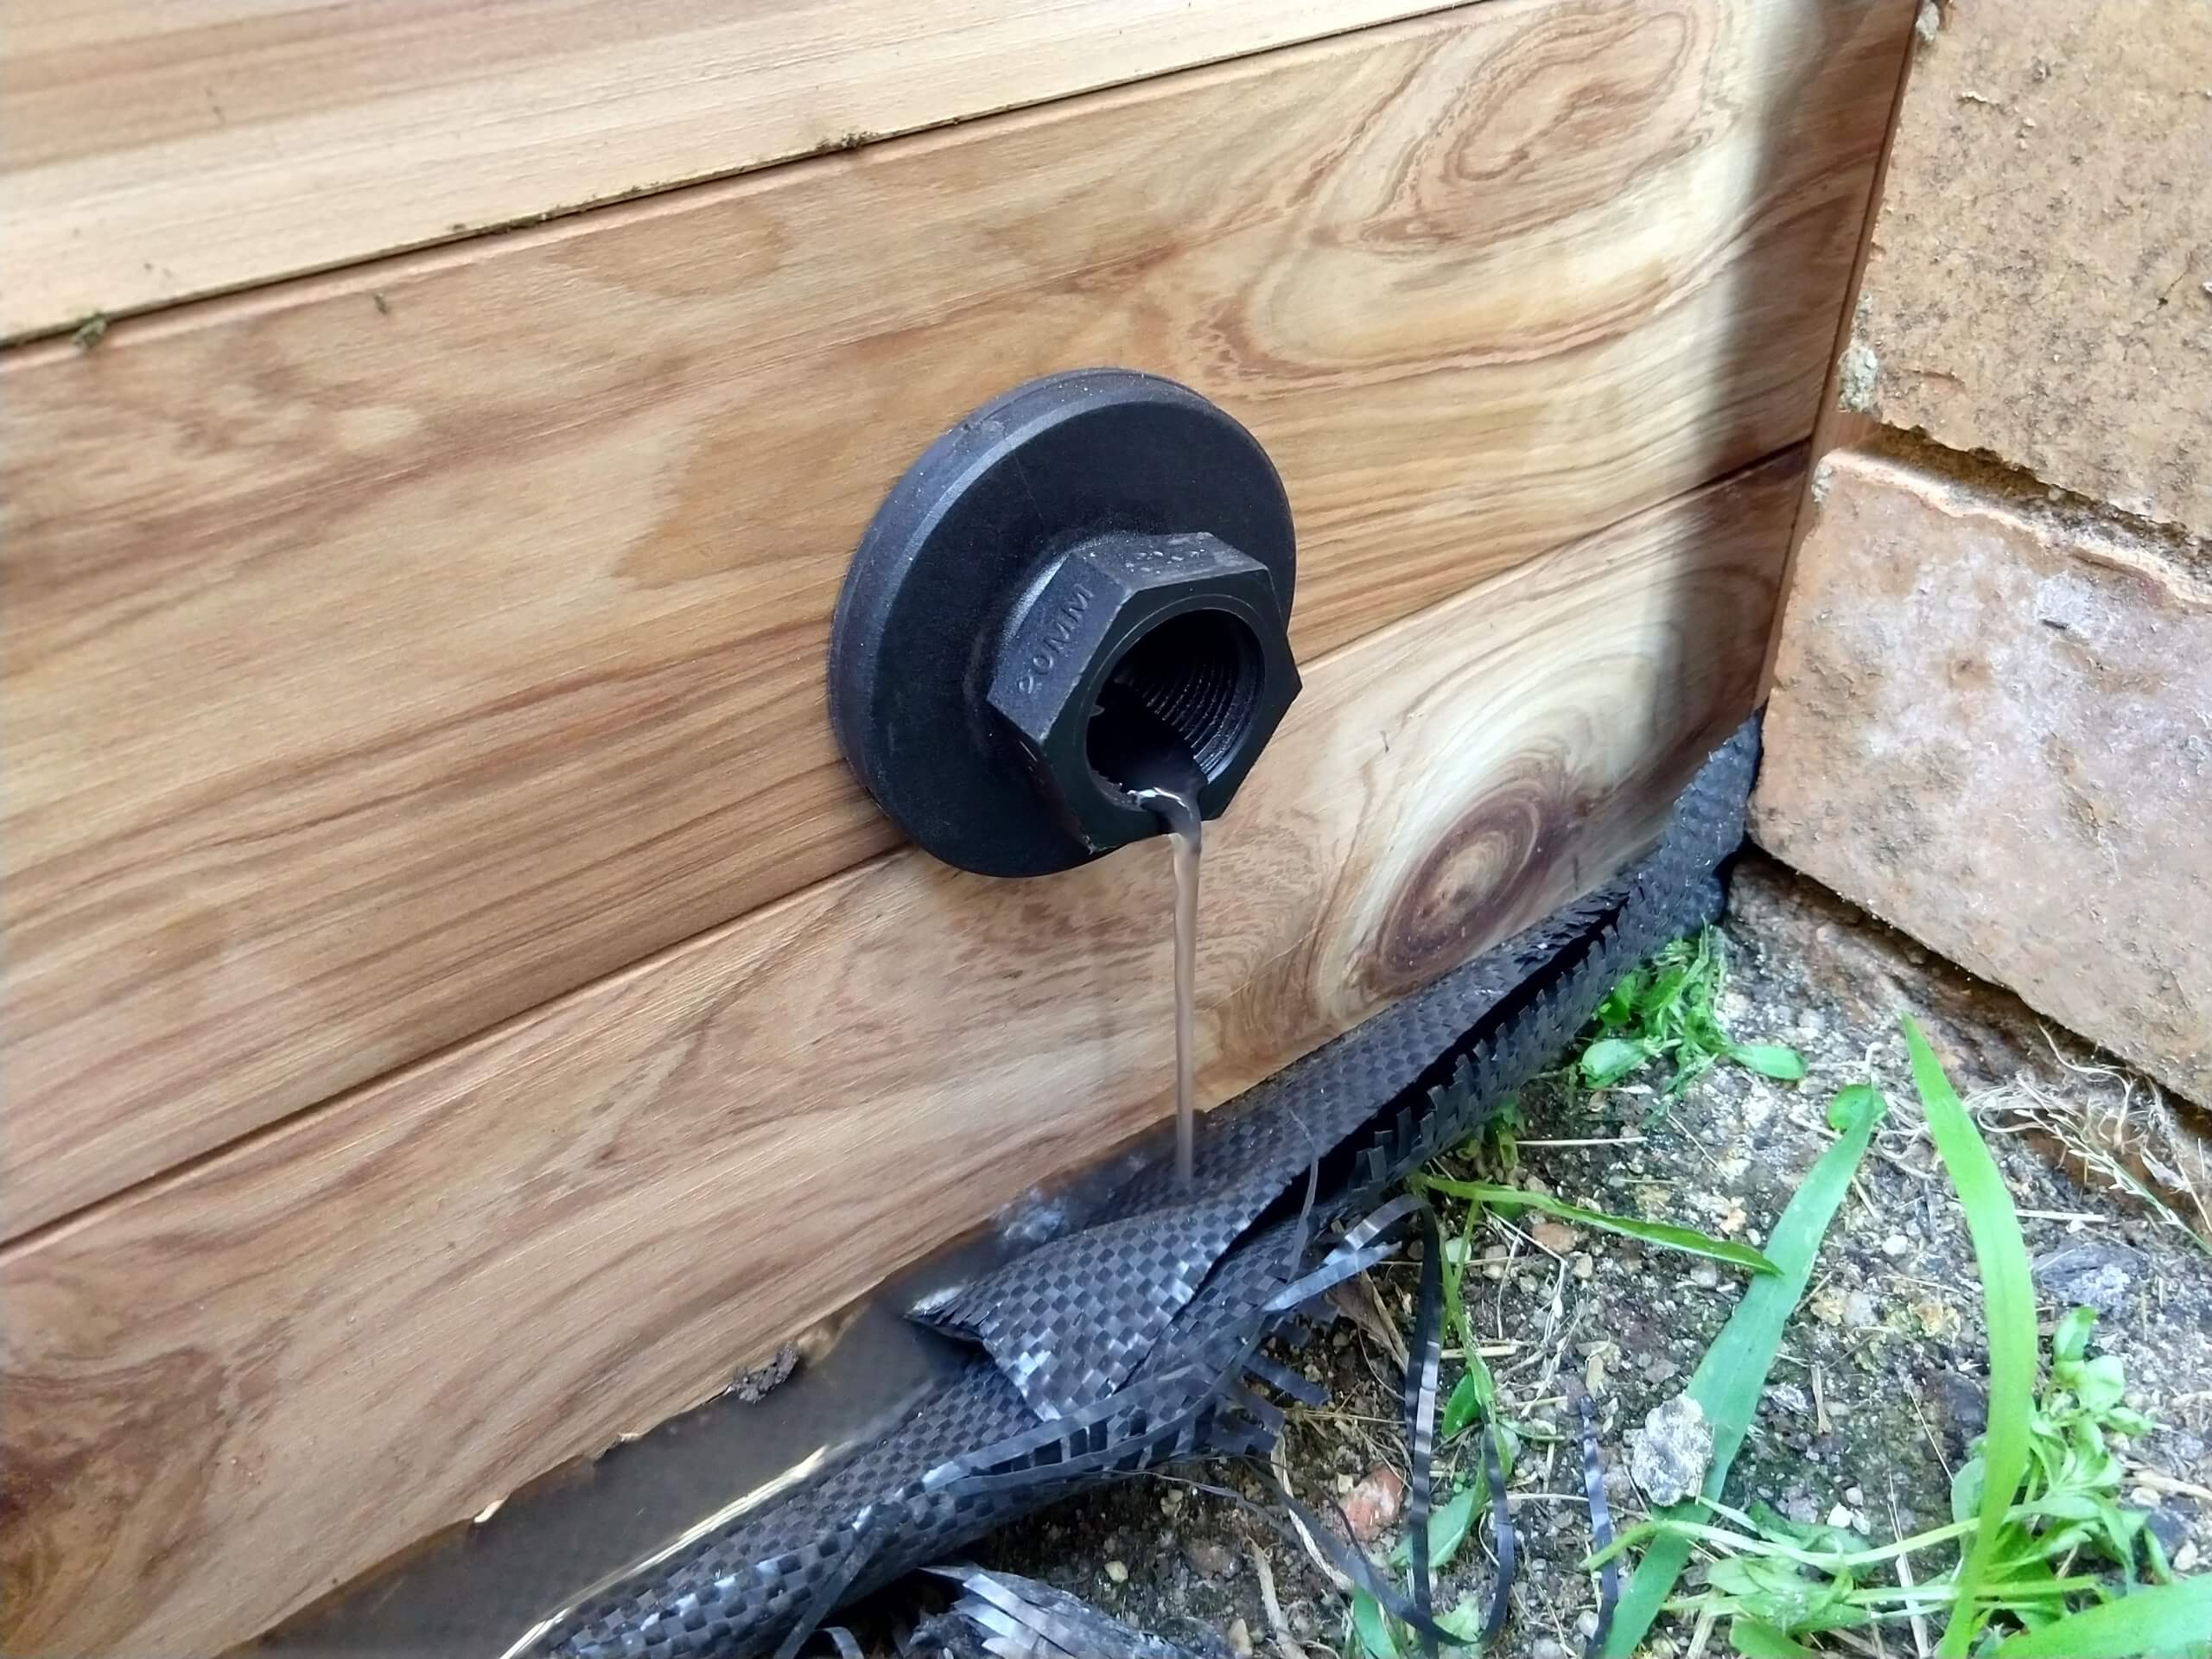 A plastic drain outlet in the side of a wooden garden bed with a small amount of water dripping from it.